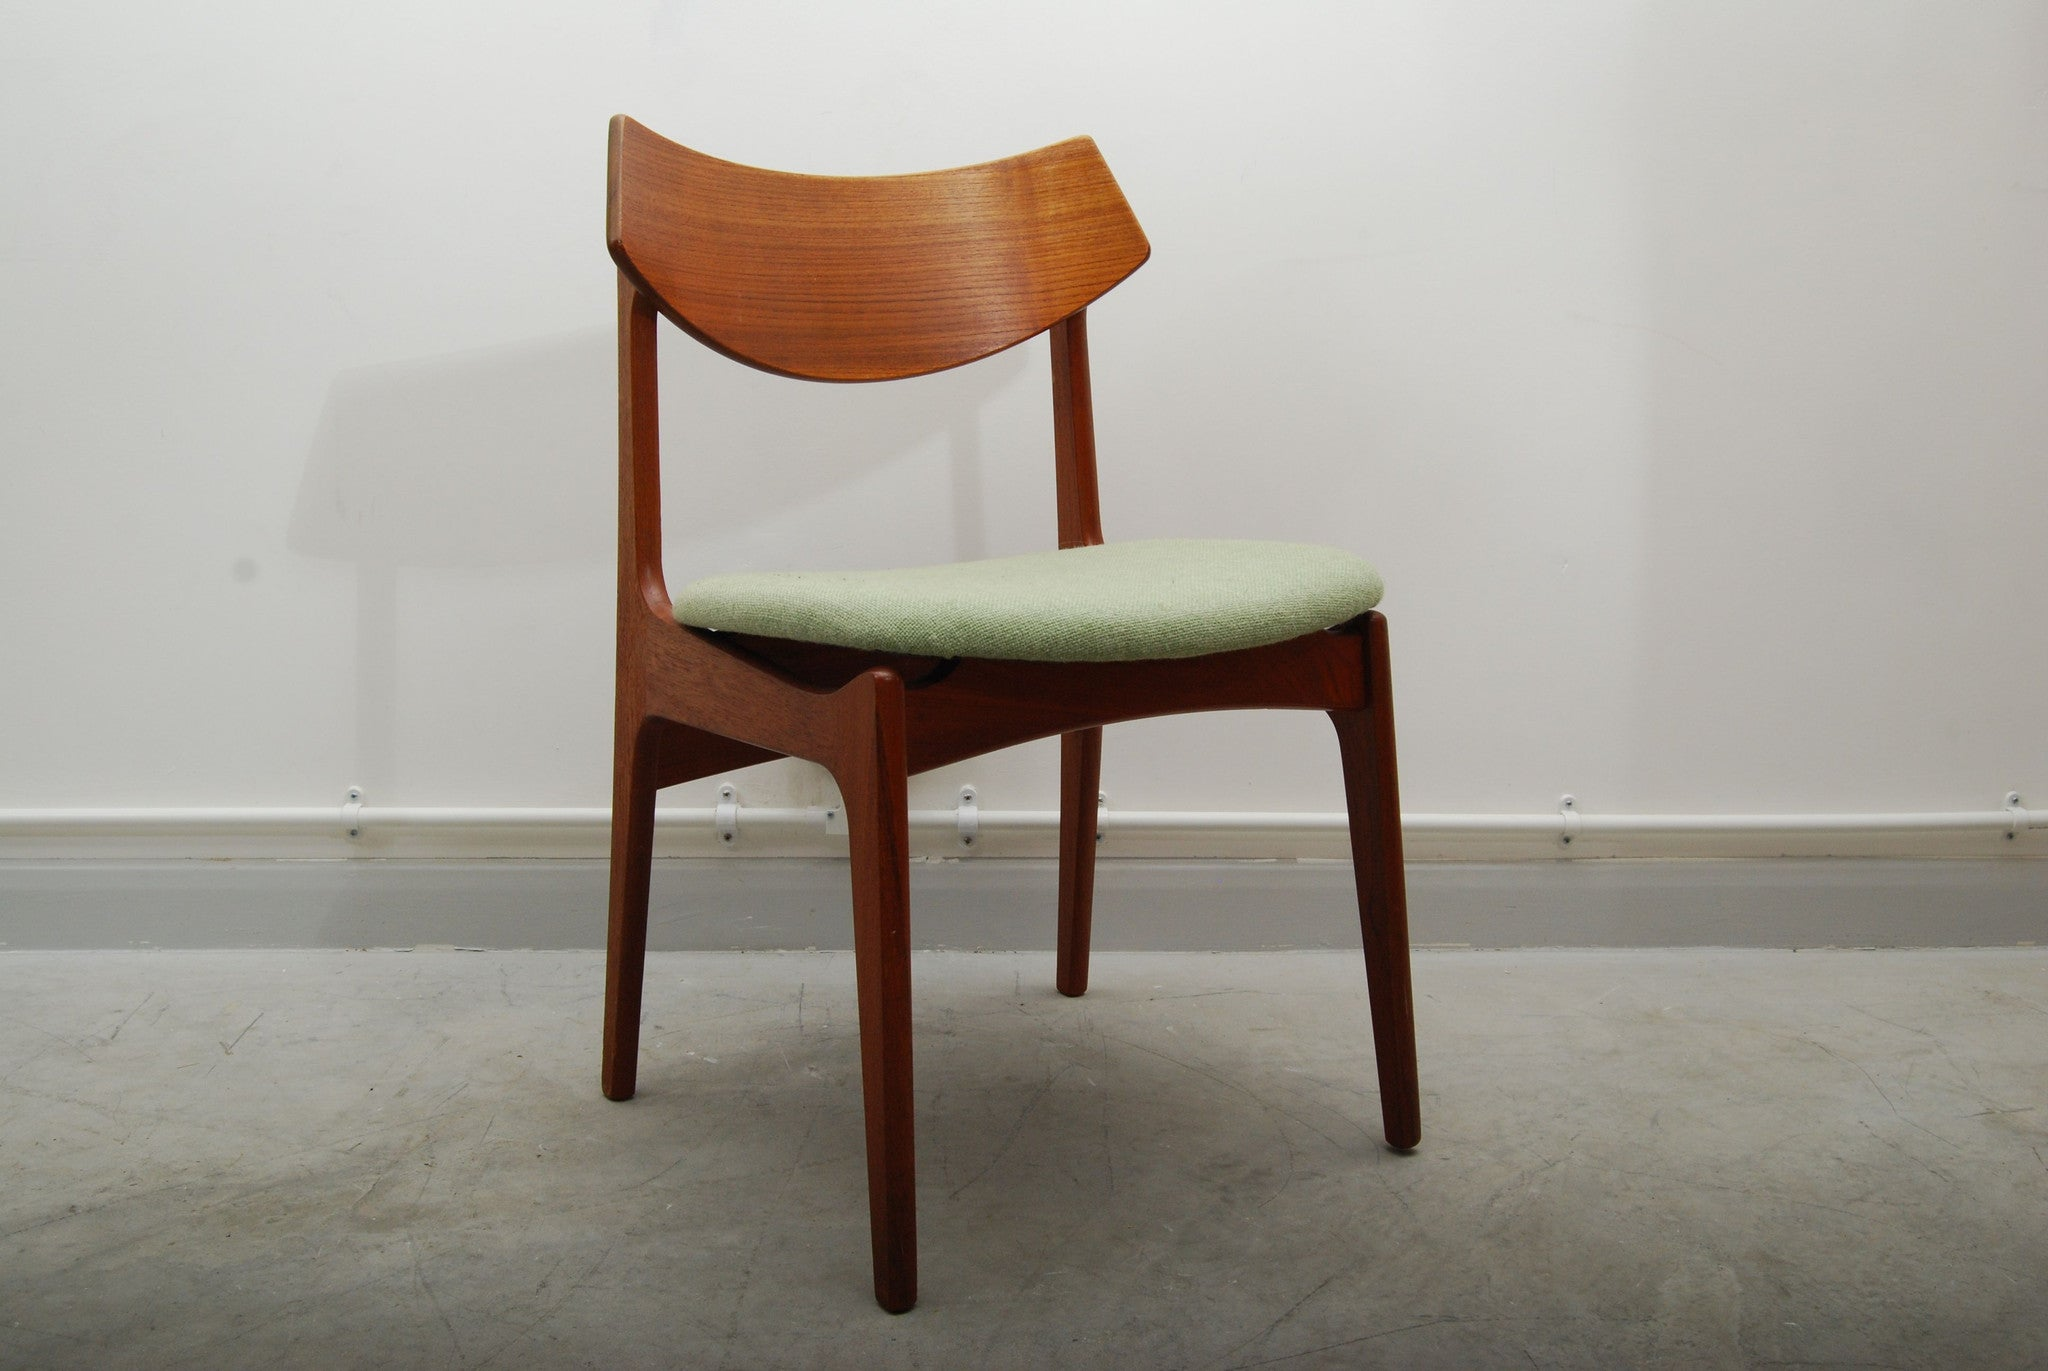 Chase & Sorensen Set of four chairs by Funder-Schmidt & Madsen